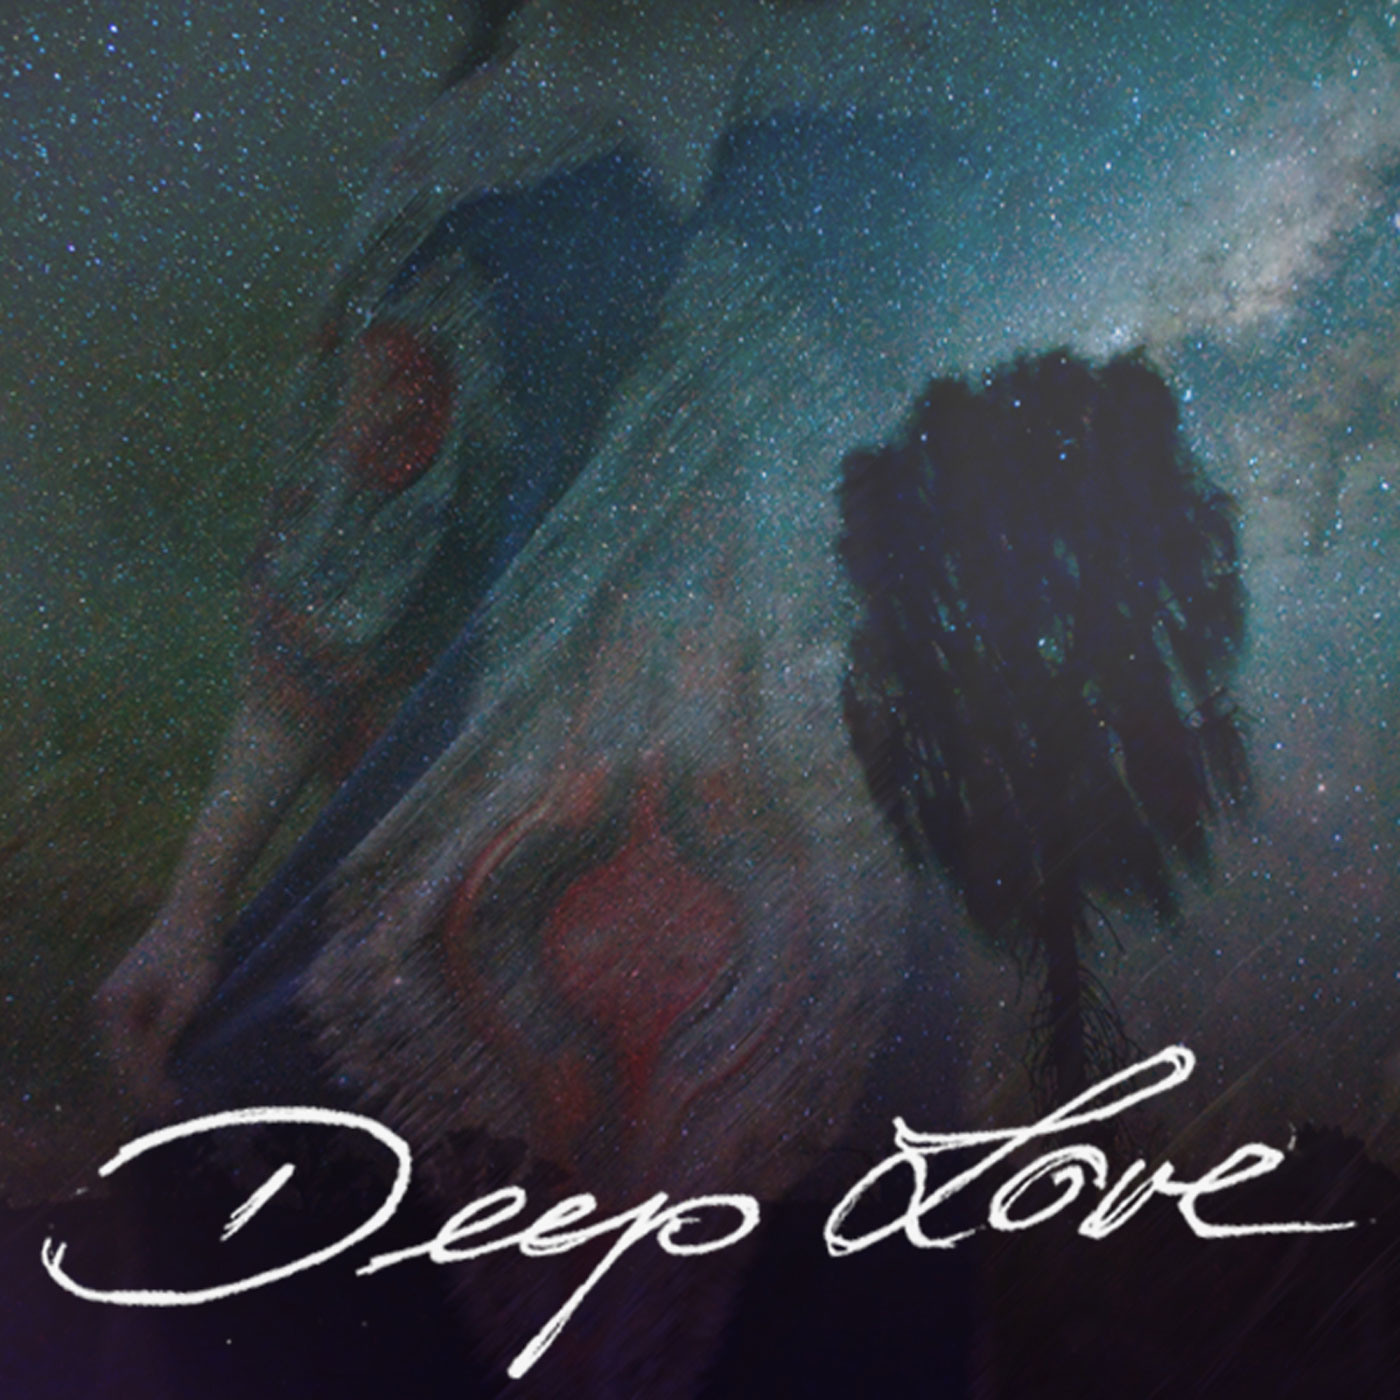 Deep Love 2 (Dirt Crew Recordings)